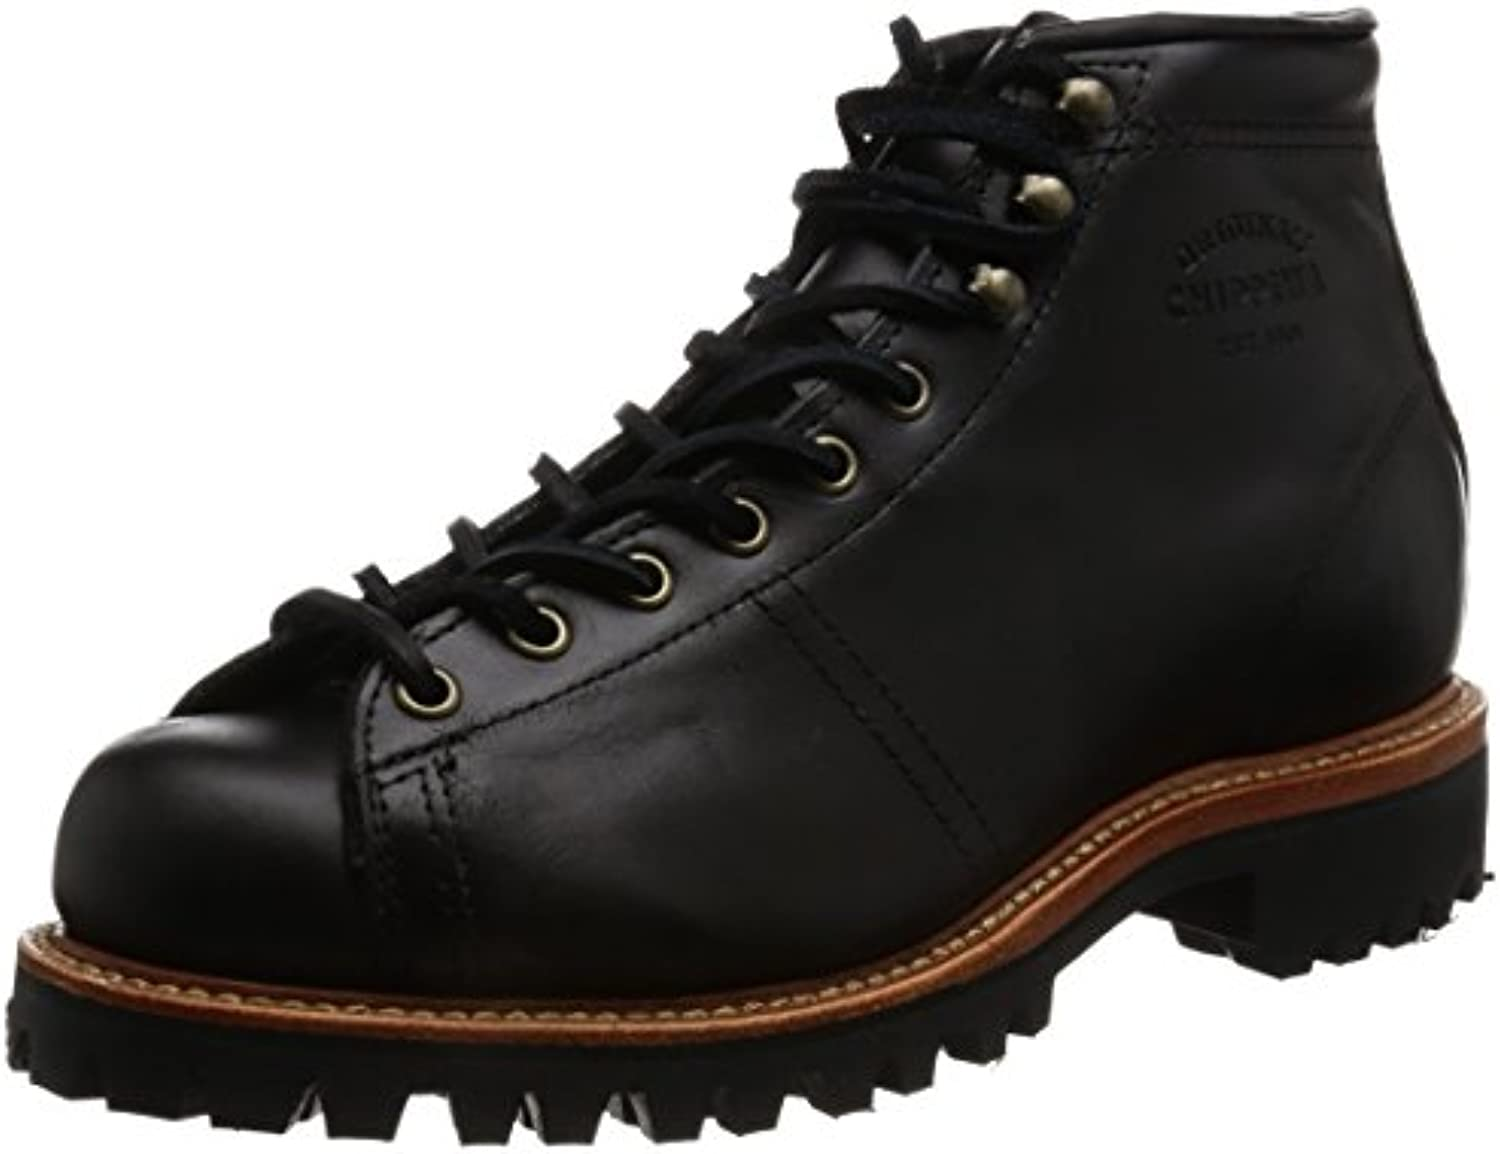 Chippewa Mens 1901G42 Black Leather Boots 43.5 EU